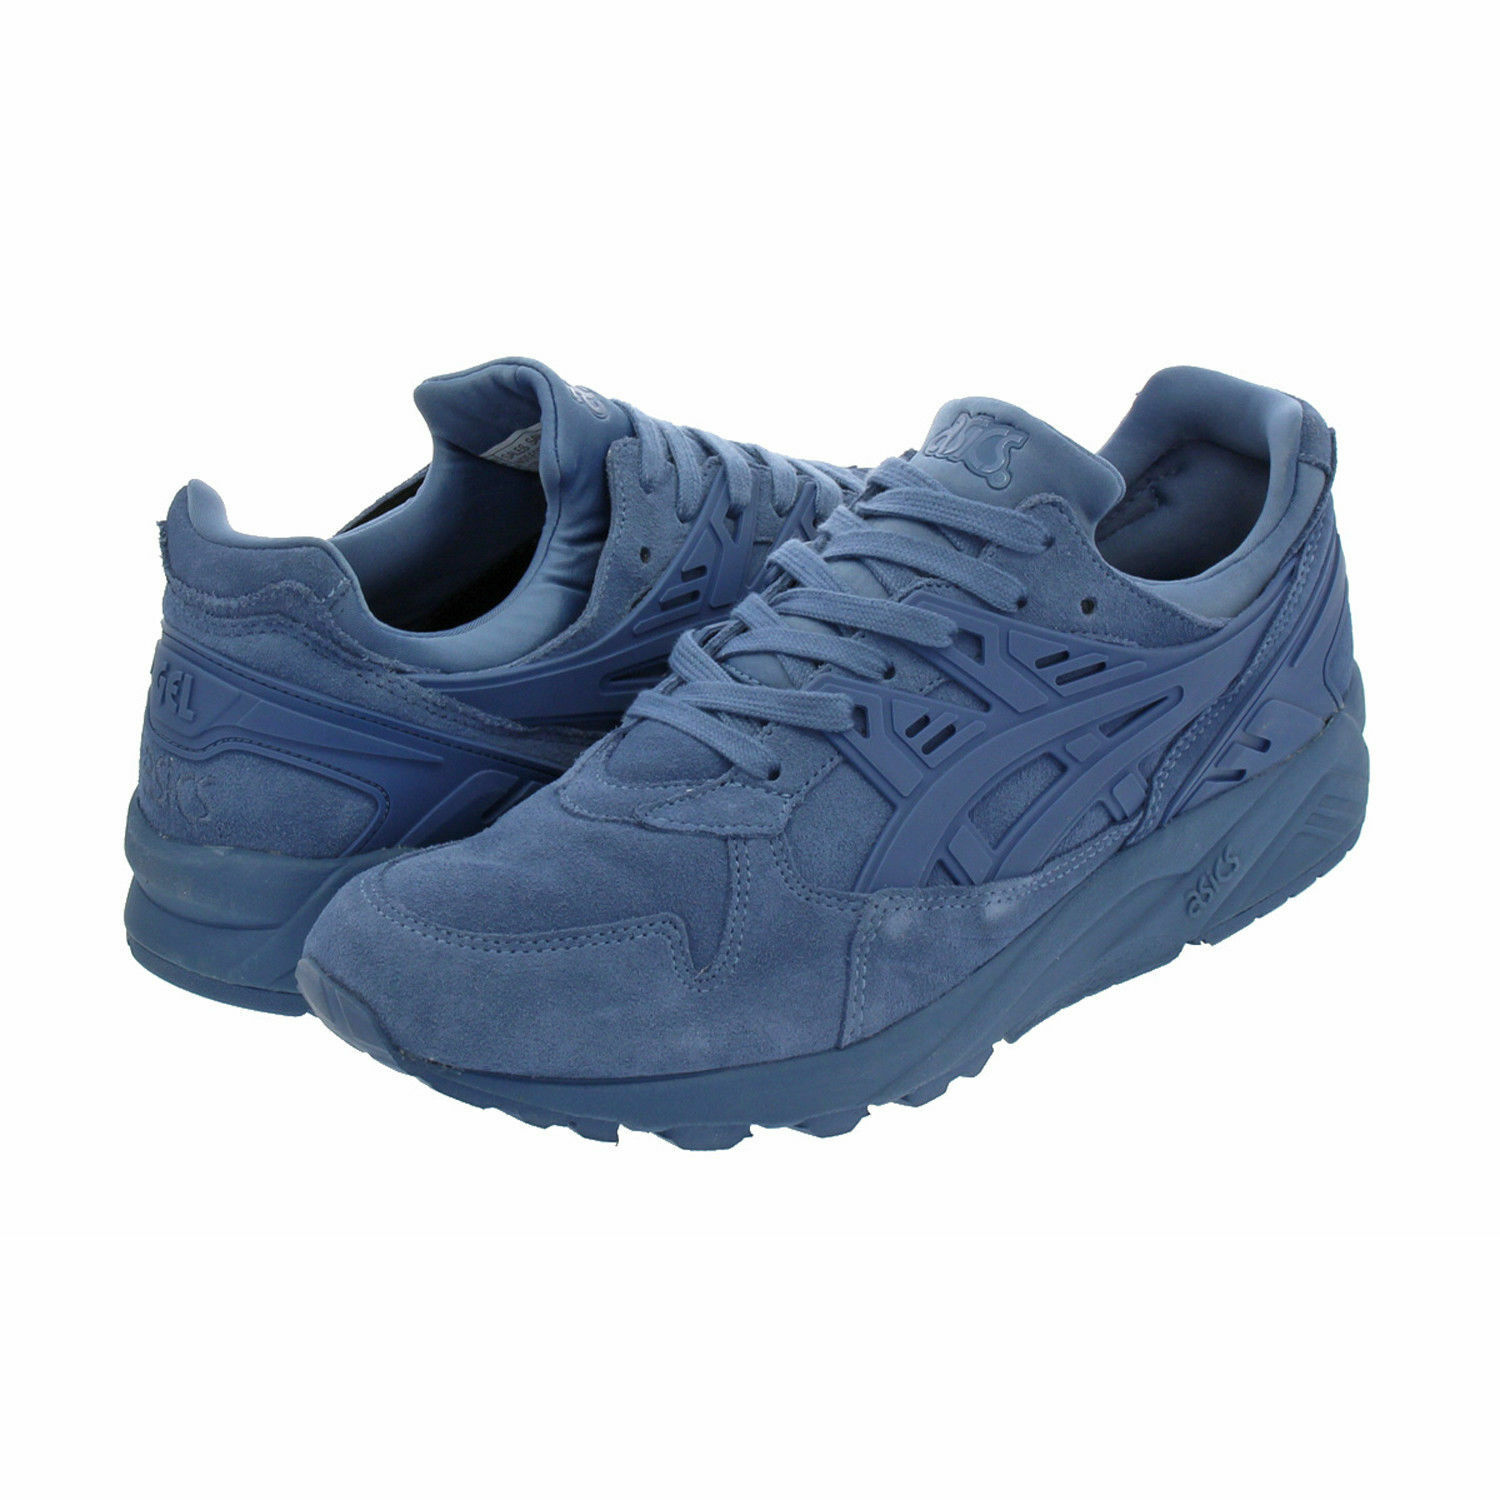 Asics Gel Kayano Trainer Mens Shoes (HL7X1.4646) Pigeon Blue/Pigeon Blue